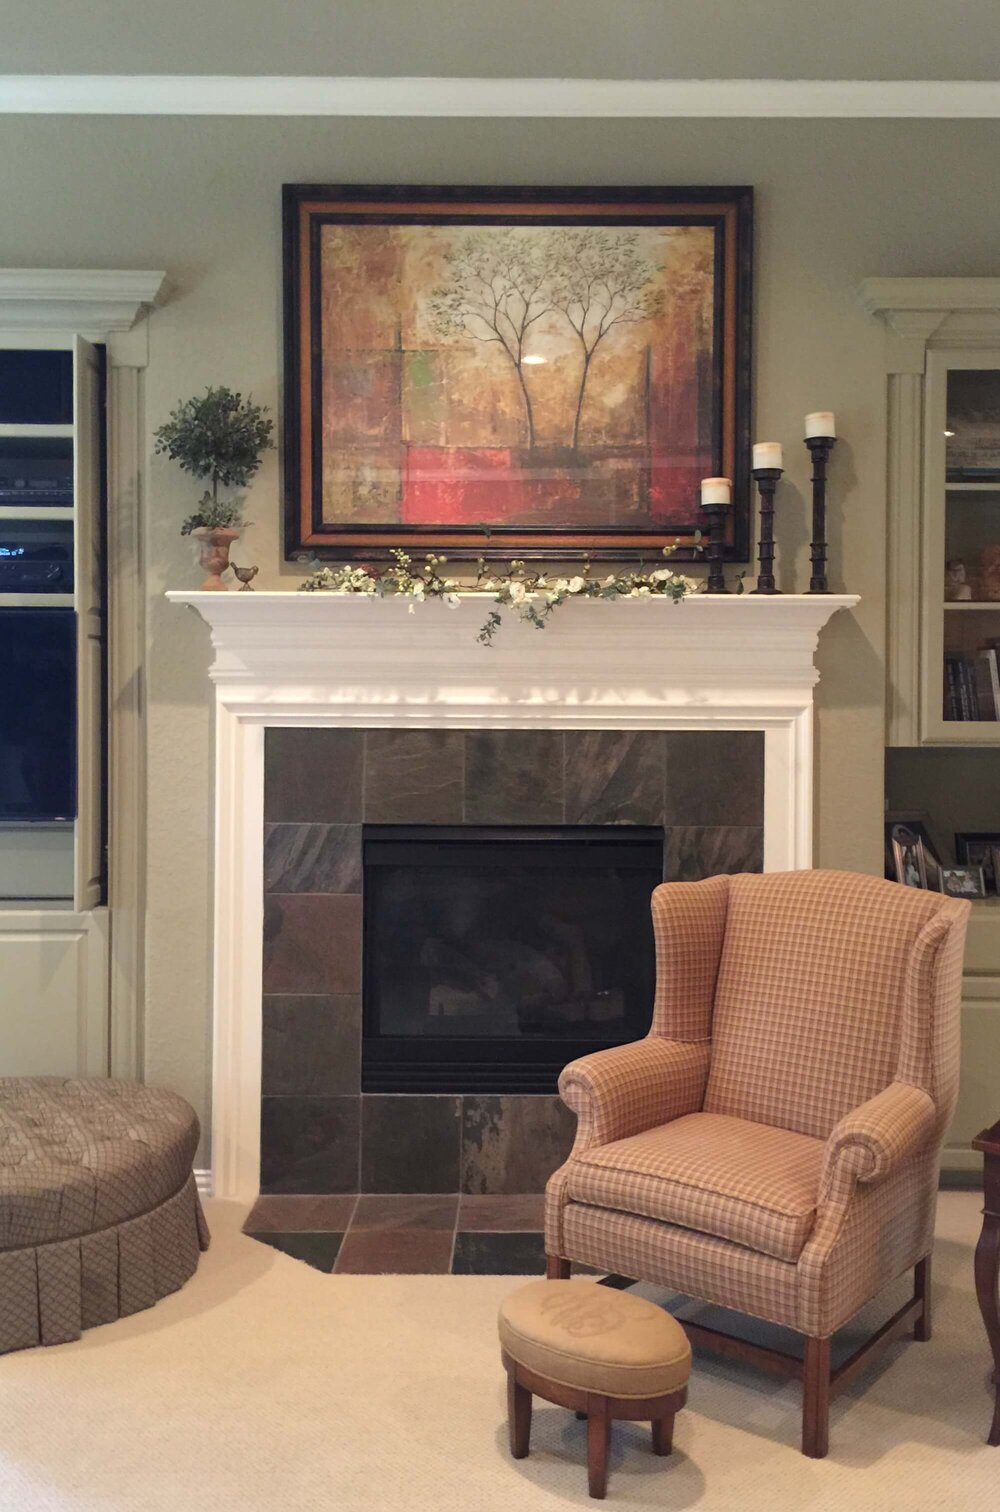 Slate Tiles for Fireplace Inspirational 5 Amazing Fireplace Transformations with Minimal Remodeling